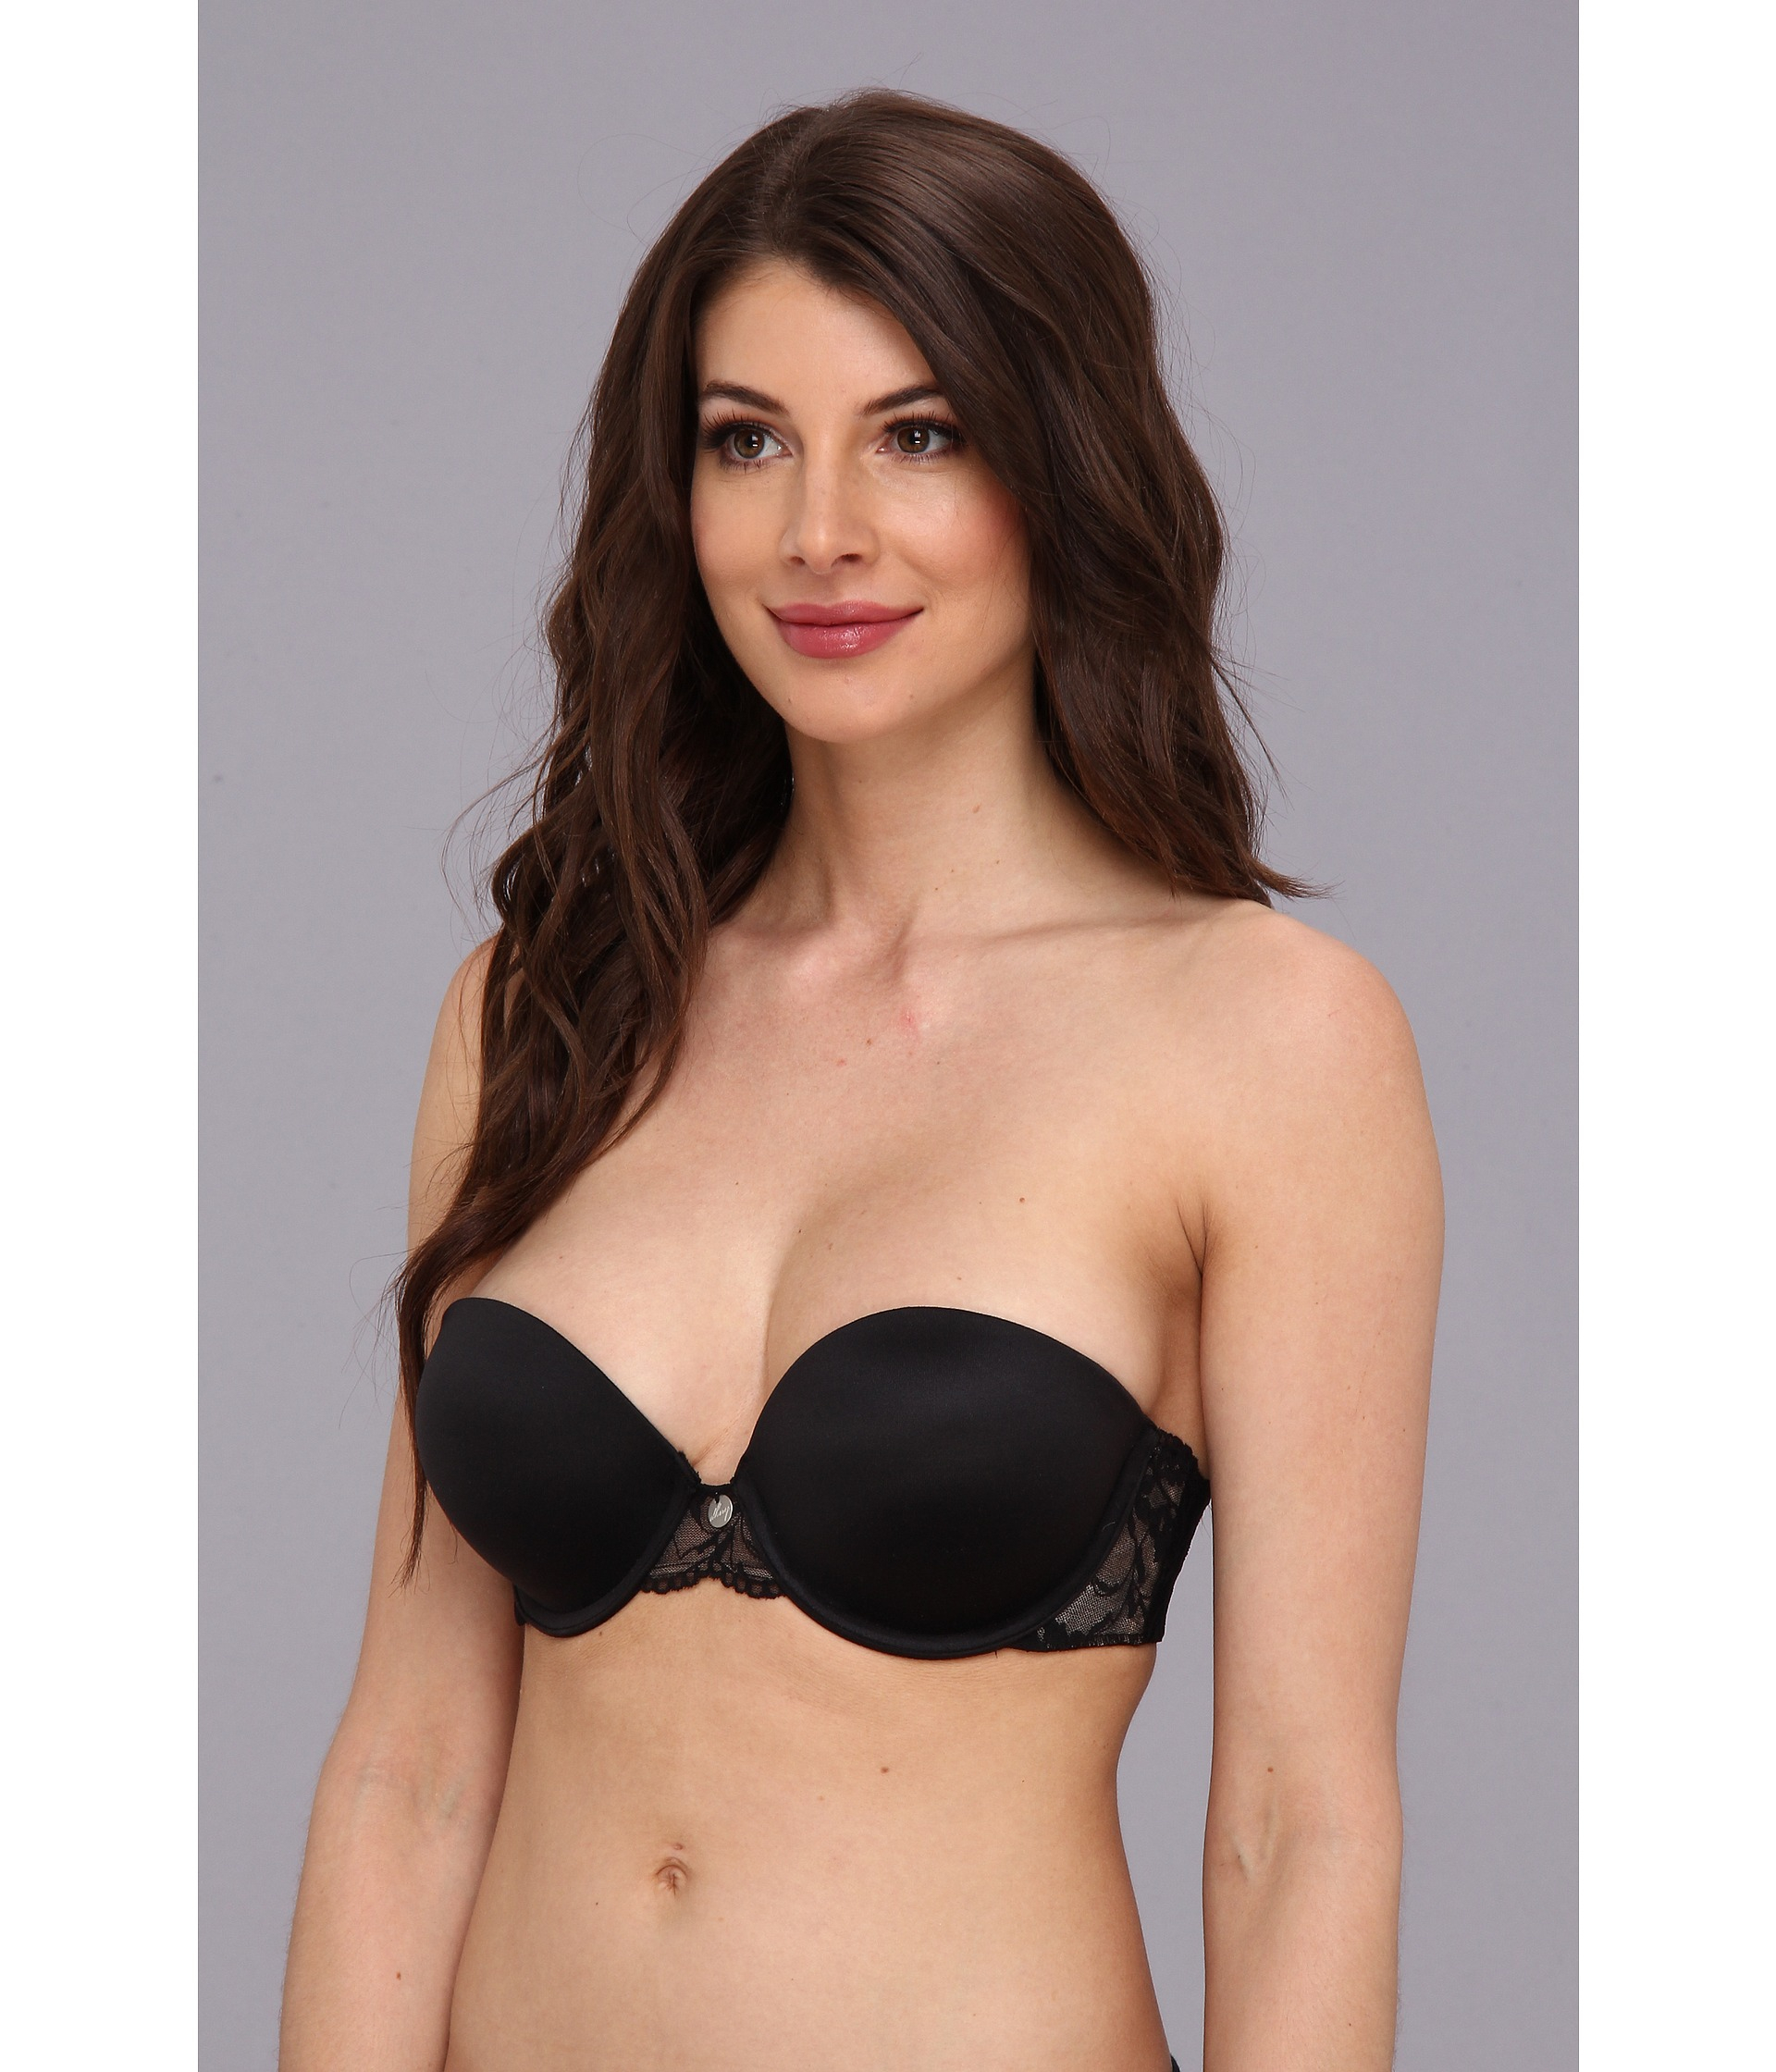 This supportive strapless bra has smooth seamless lace cups that lift and shape with both push up and support. The soft flat center front helps prevent the dreaded uni-boob look.